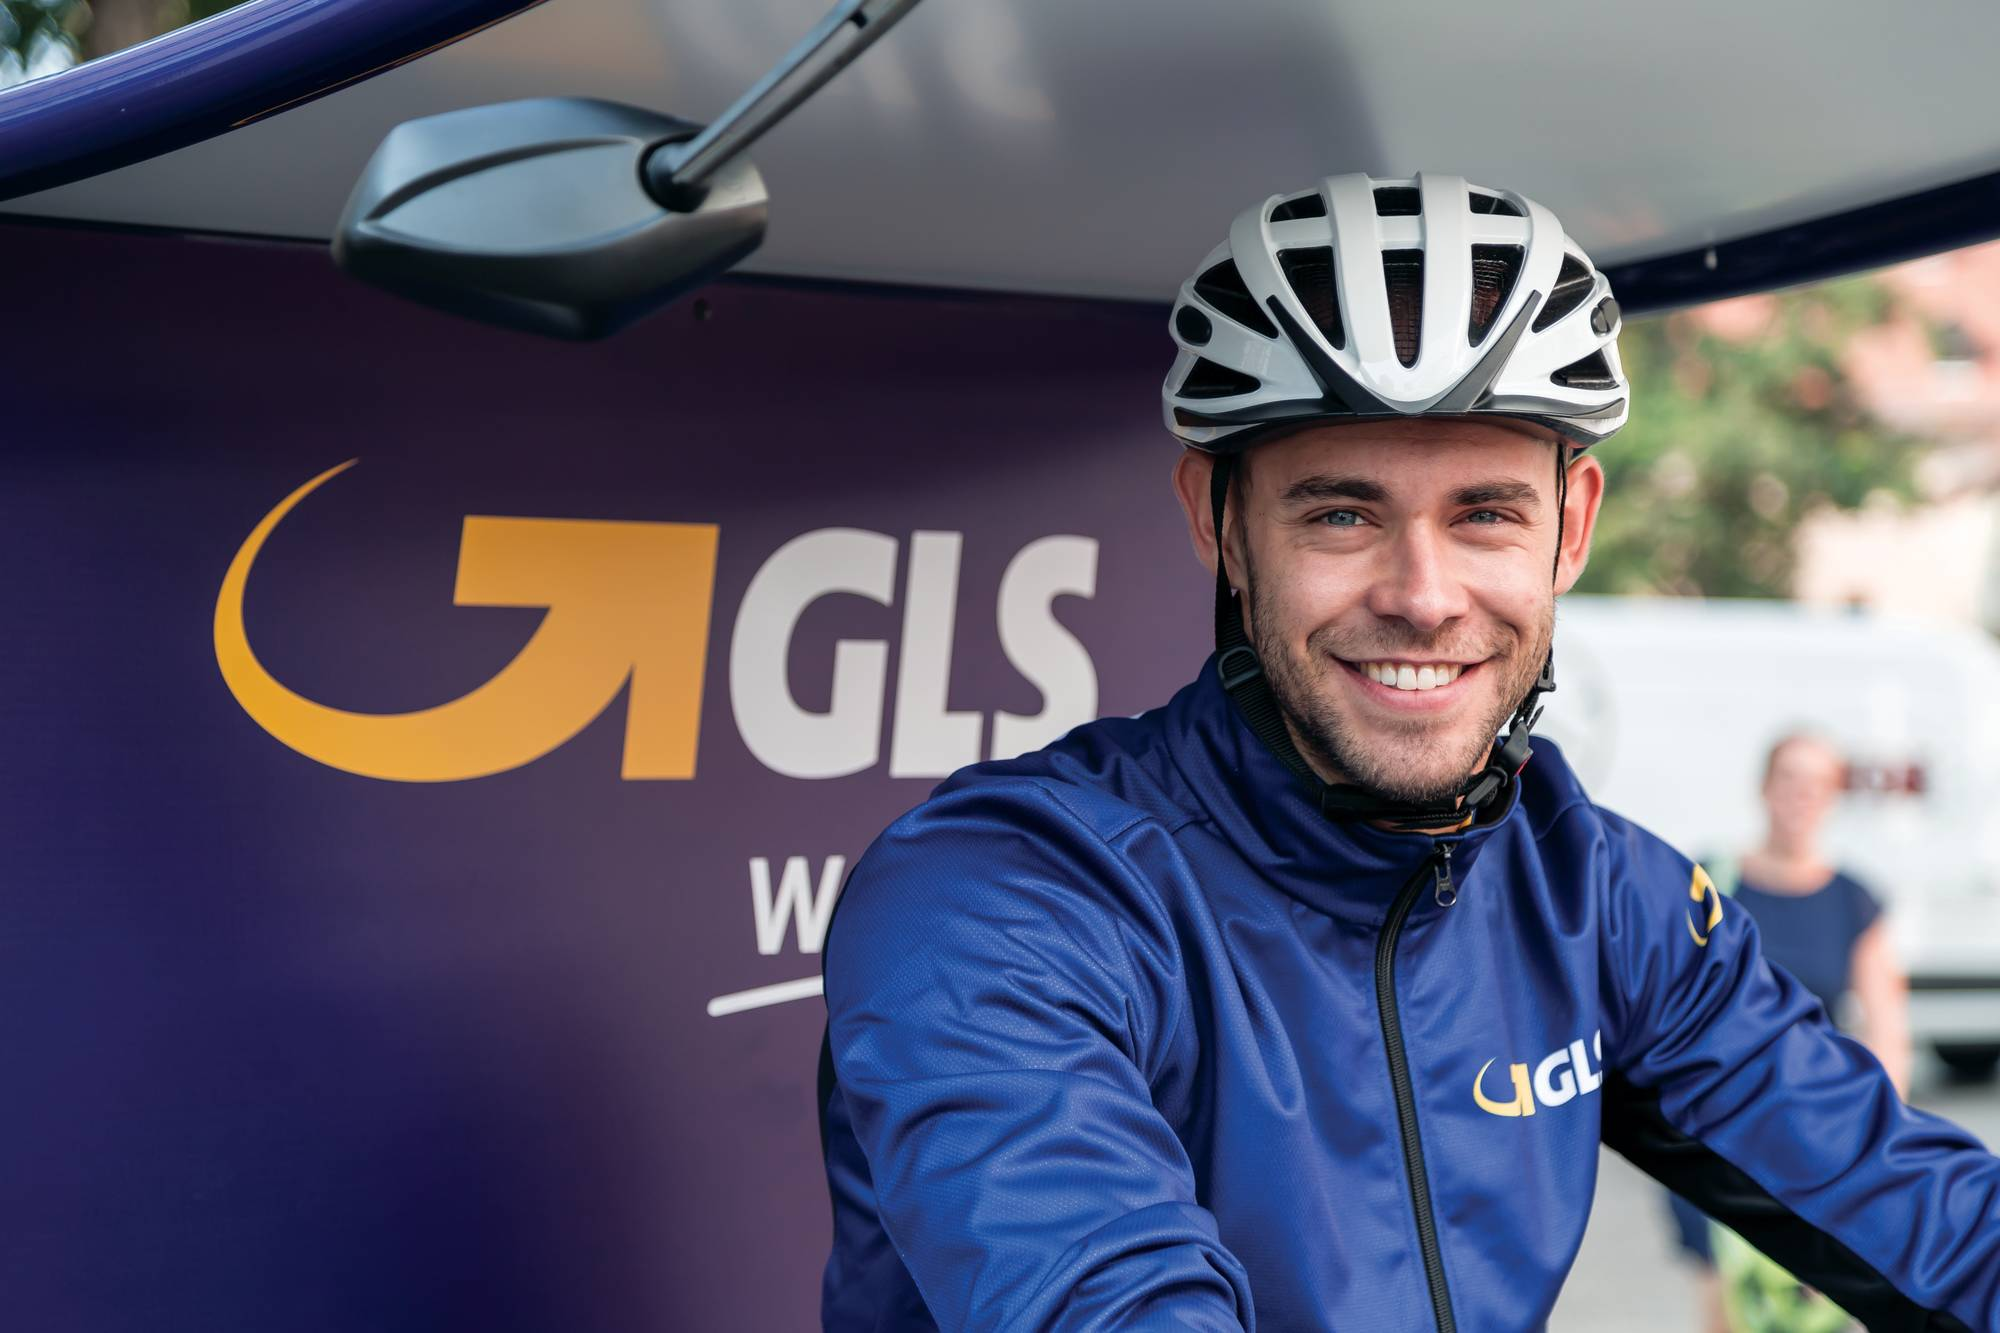 Bicycle delivery courier smiling